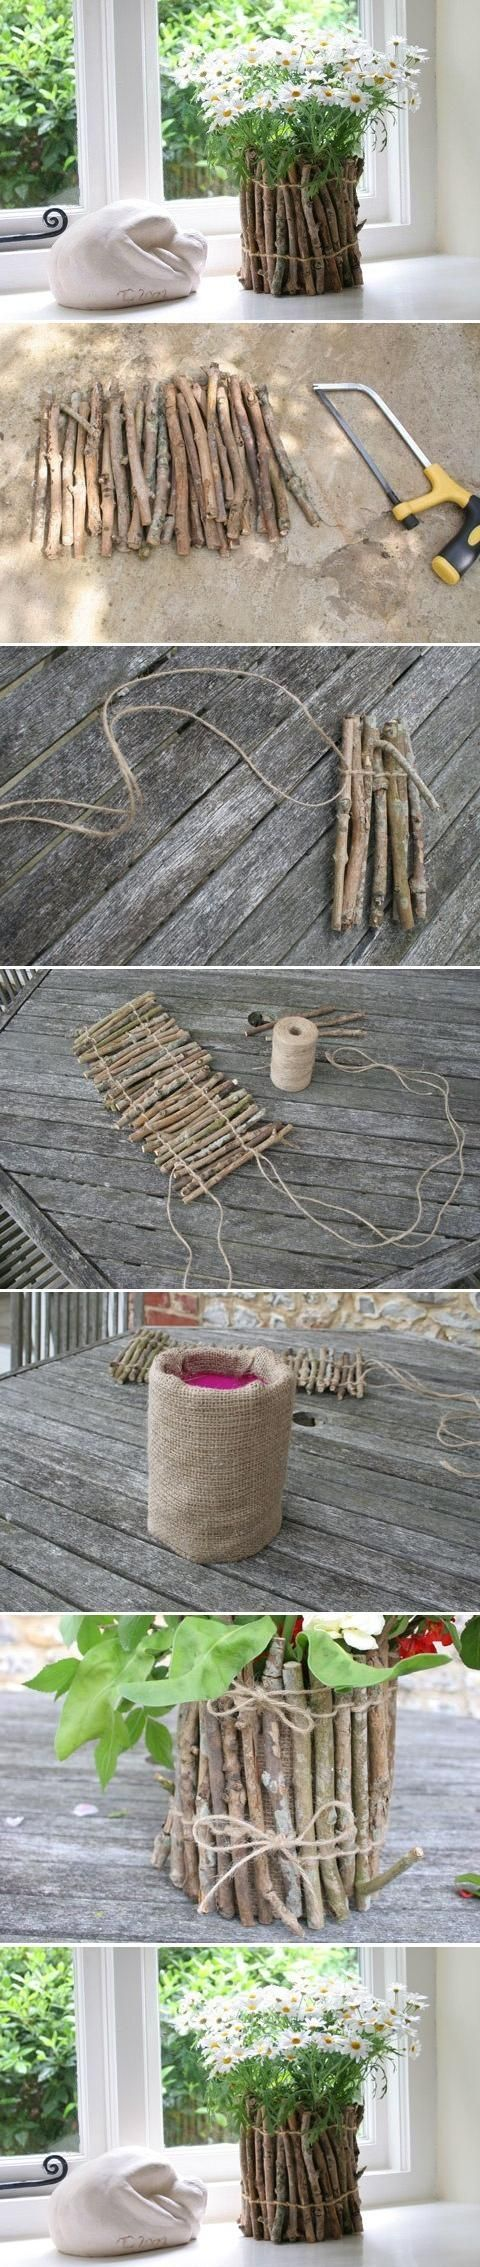 DIY Tree Branches Flower Pot Pictures, Photos, and Images for Facebook, Tumblr, Pinterest, and Twitter